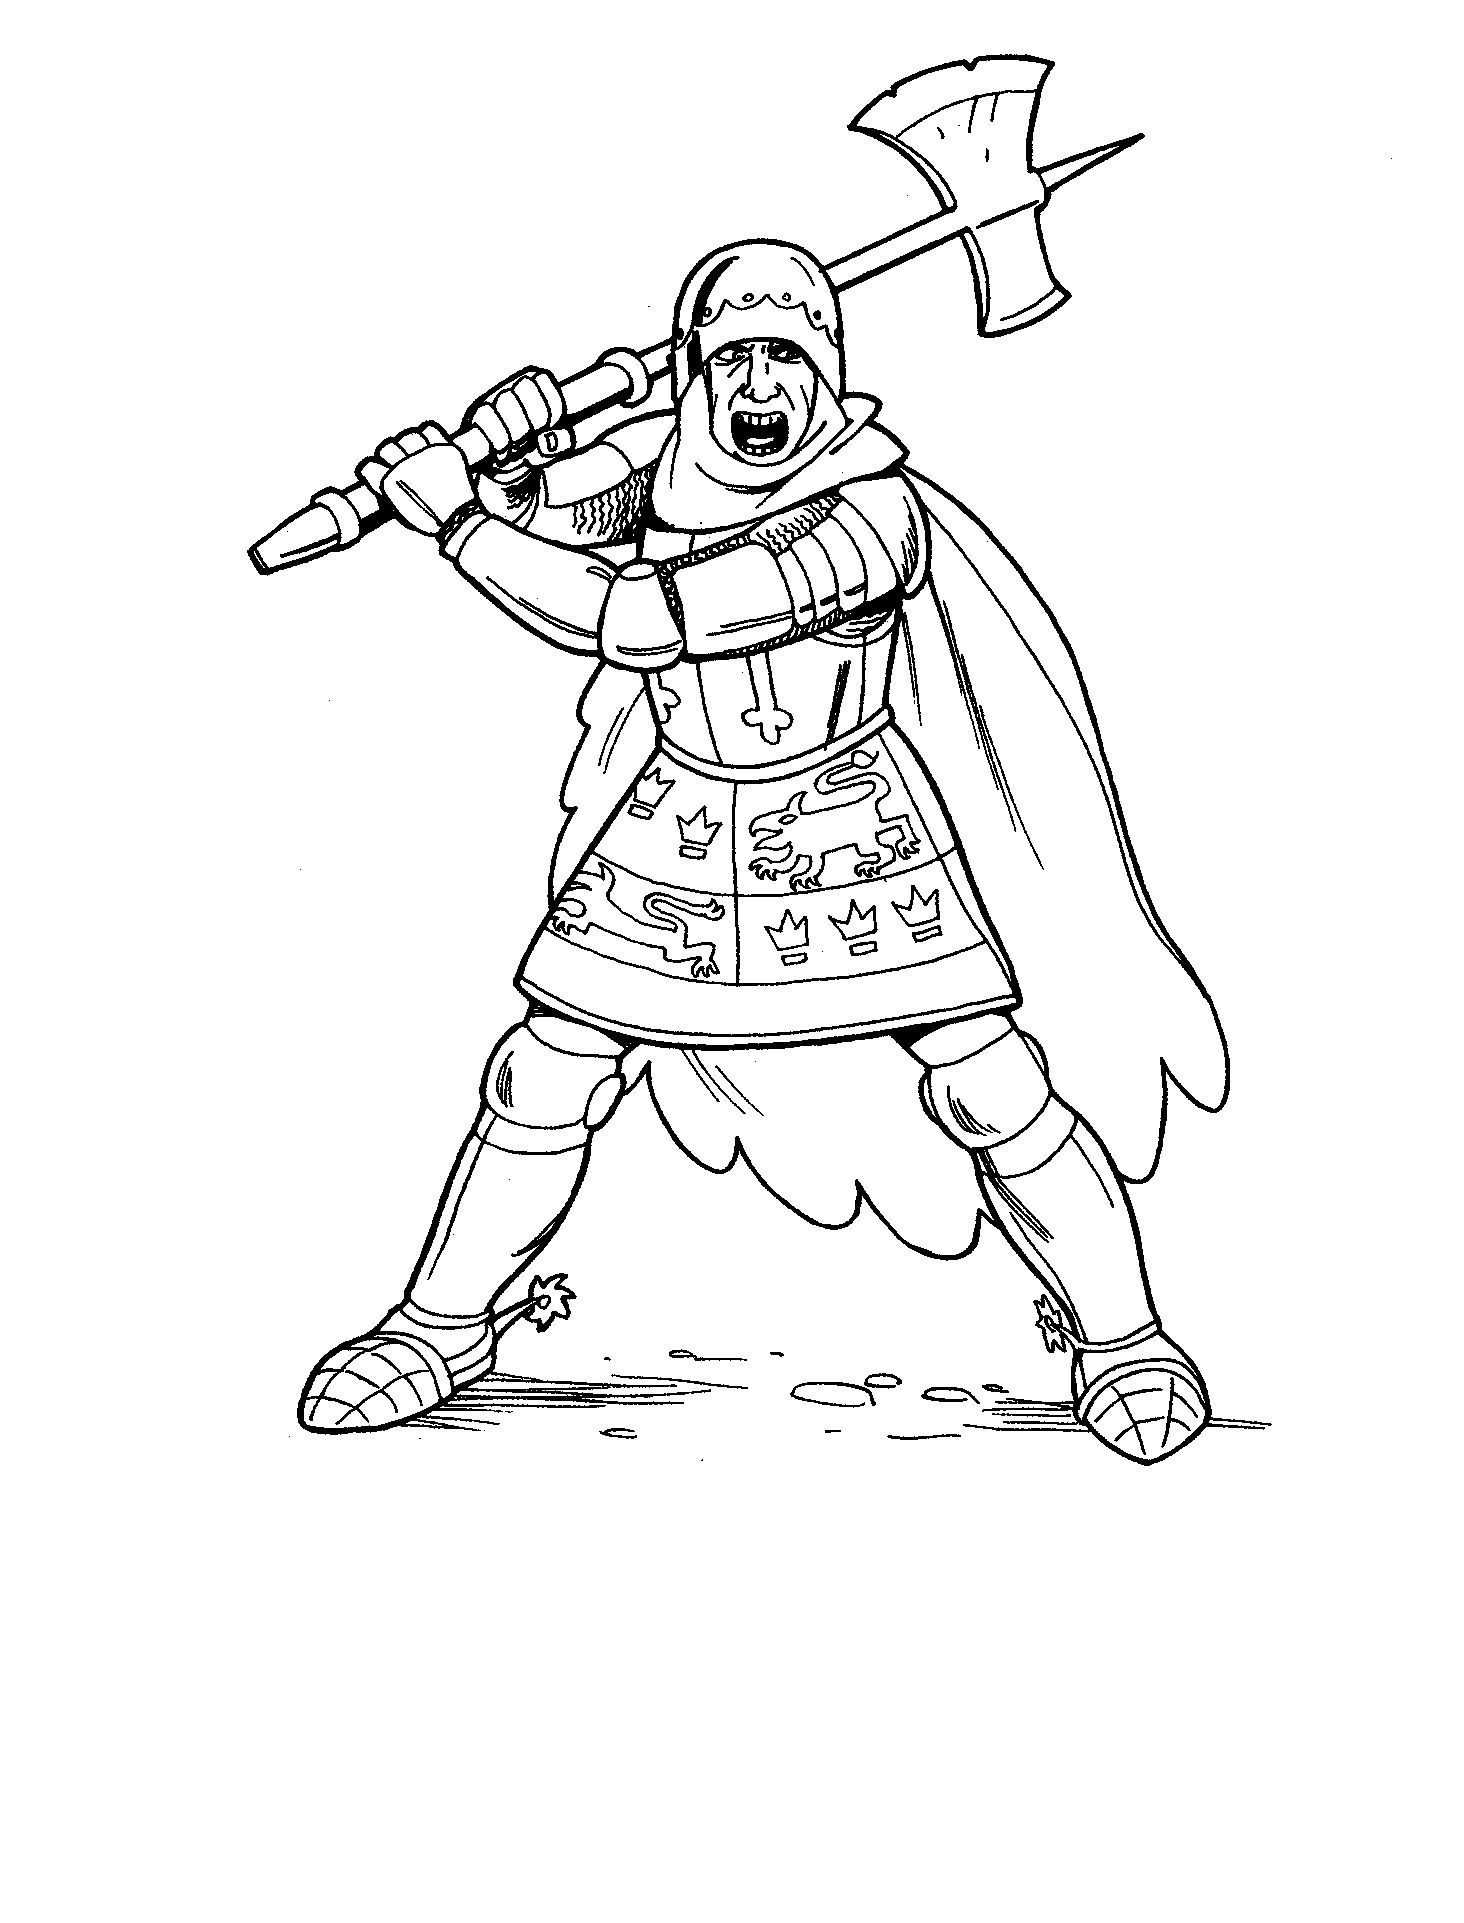 Knights Learned To Use An Ax Coloring Pages For Kids Dum Printable Kings Queens And Princesses Col Princess Coloring Pages Princess Coloring Coloring Pages